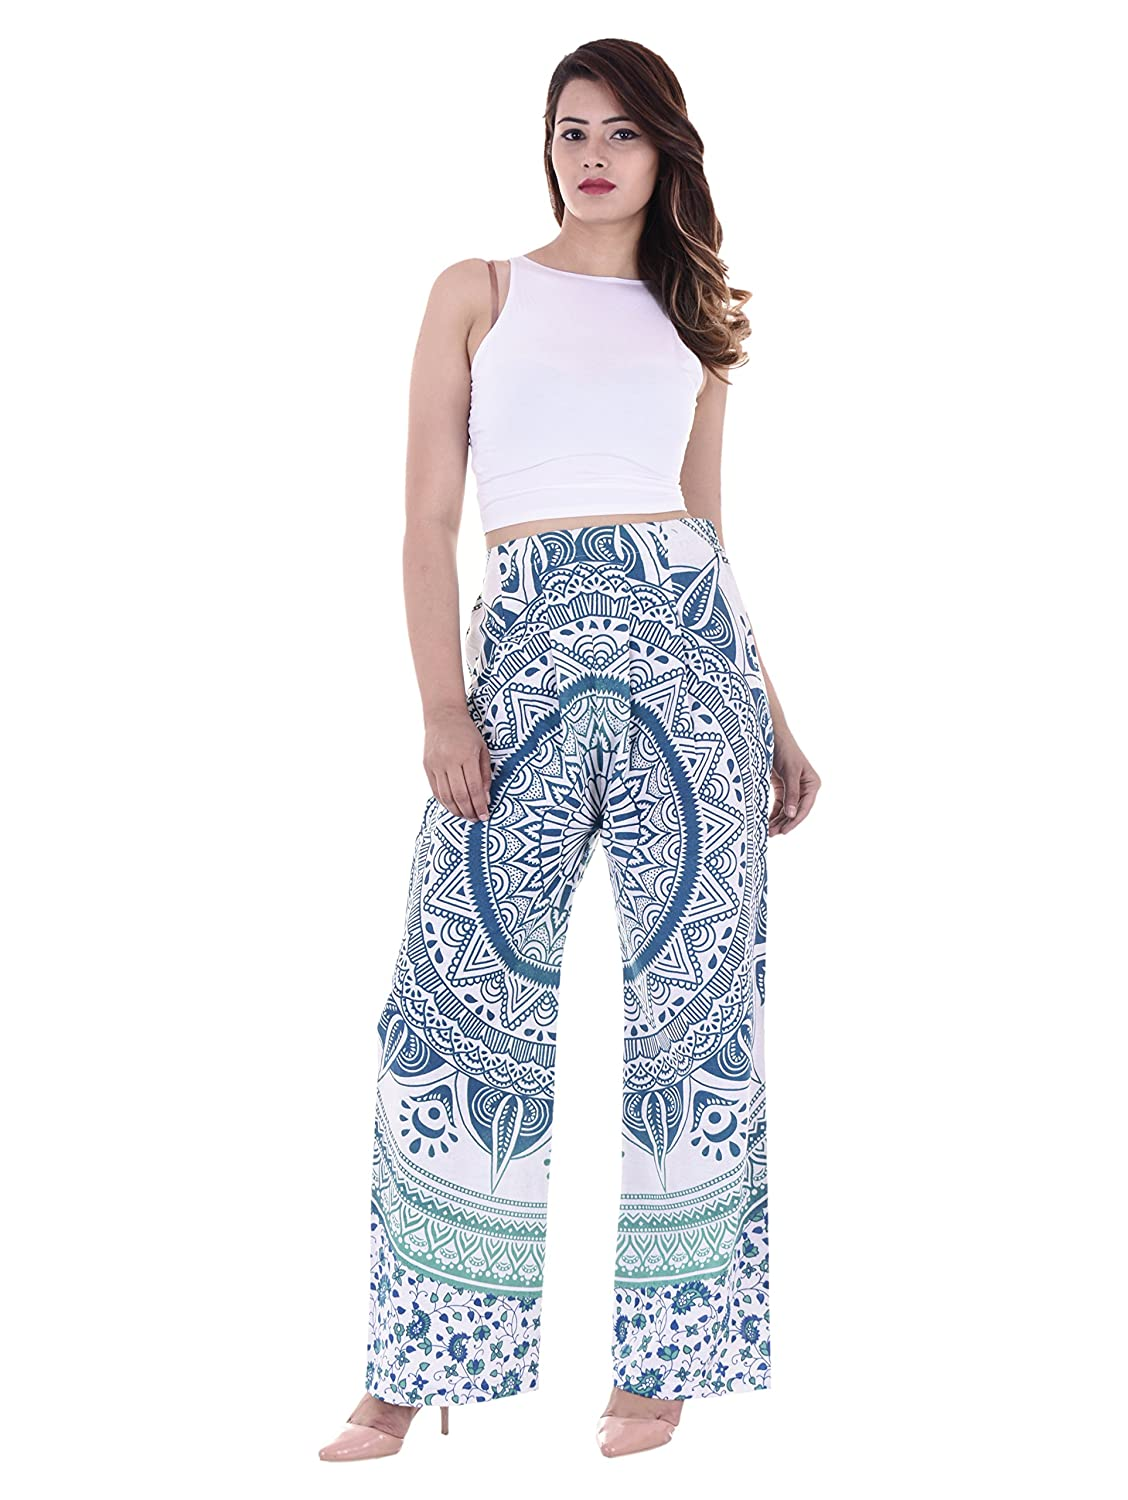 888ed8095a Blue Ombre Mandala Printed Comfortable Regular Trousers Yoga Harem High  Rise Stylish Pants Harem By Handicraft-Palace (Large): Amazon.in: Clothing  & ...